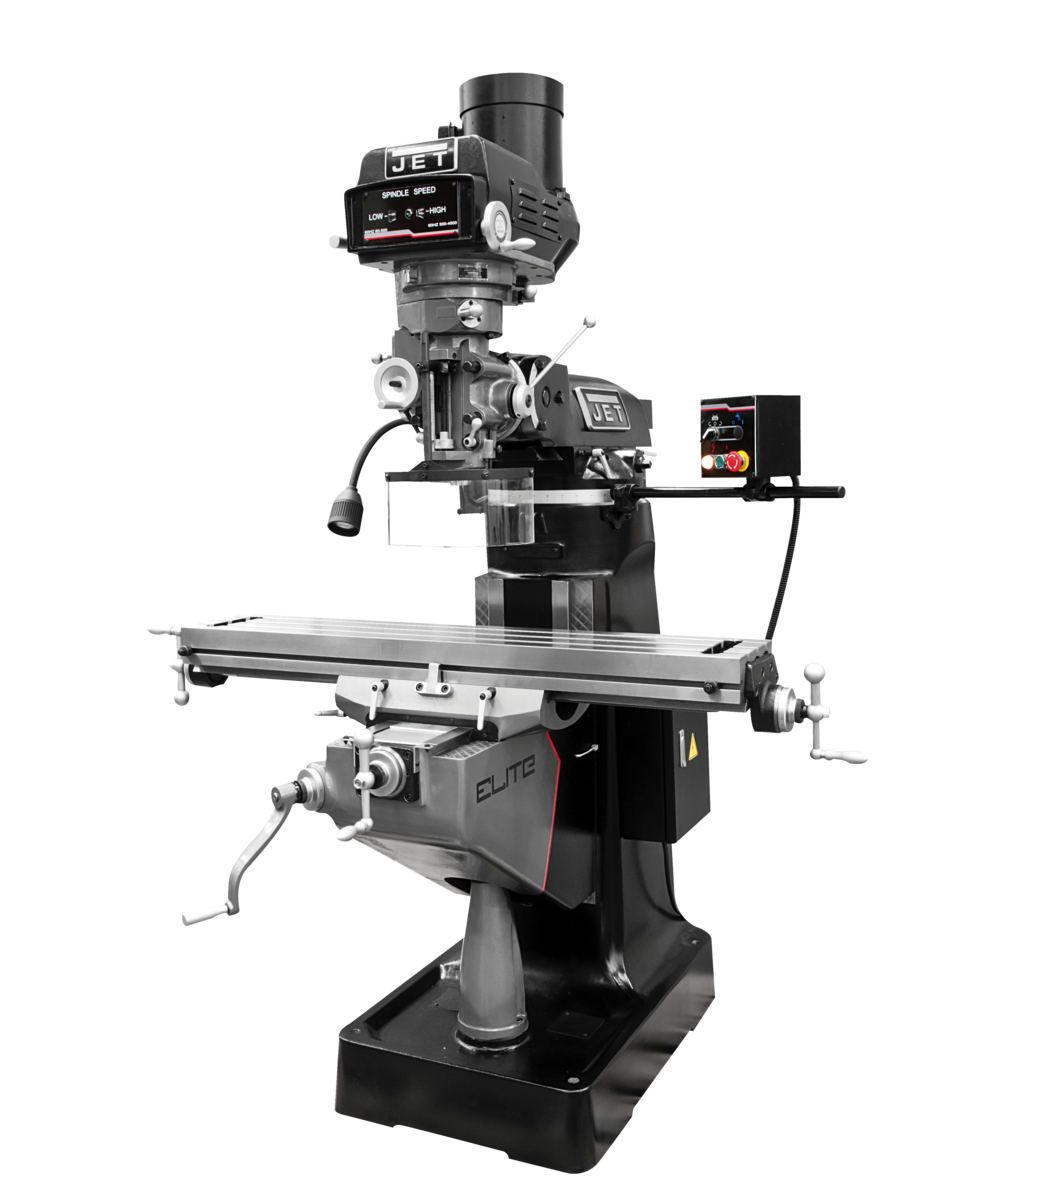 ETM-949 Mill with Servo X, Y-Axis Powerfeeds and USA Air Powered Draw Bar